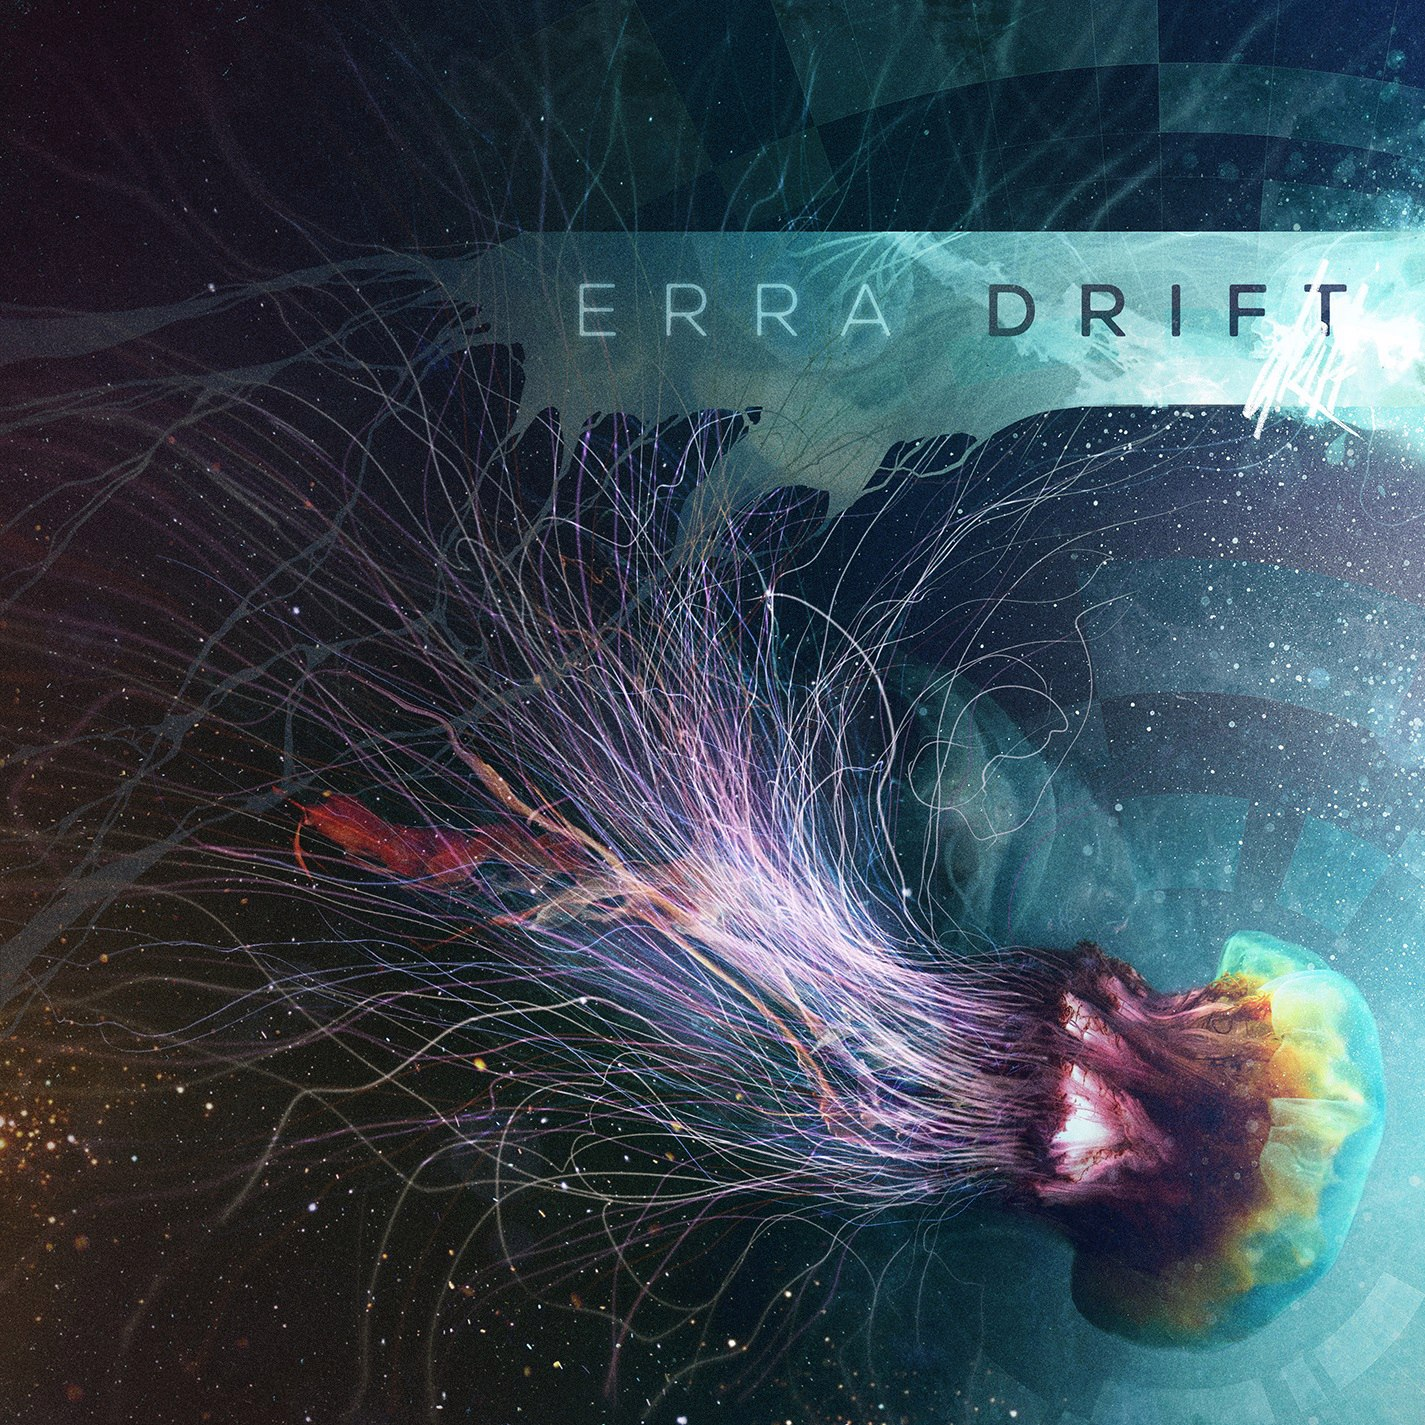 Erra - Drift [single] (2016)